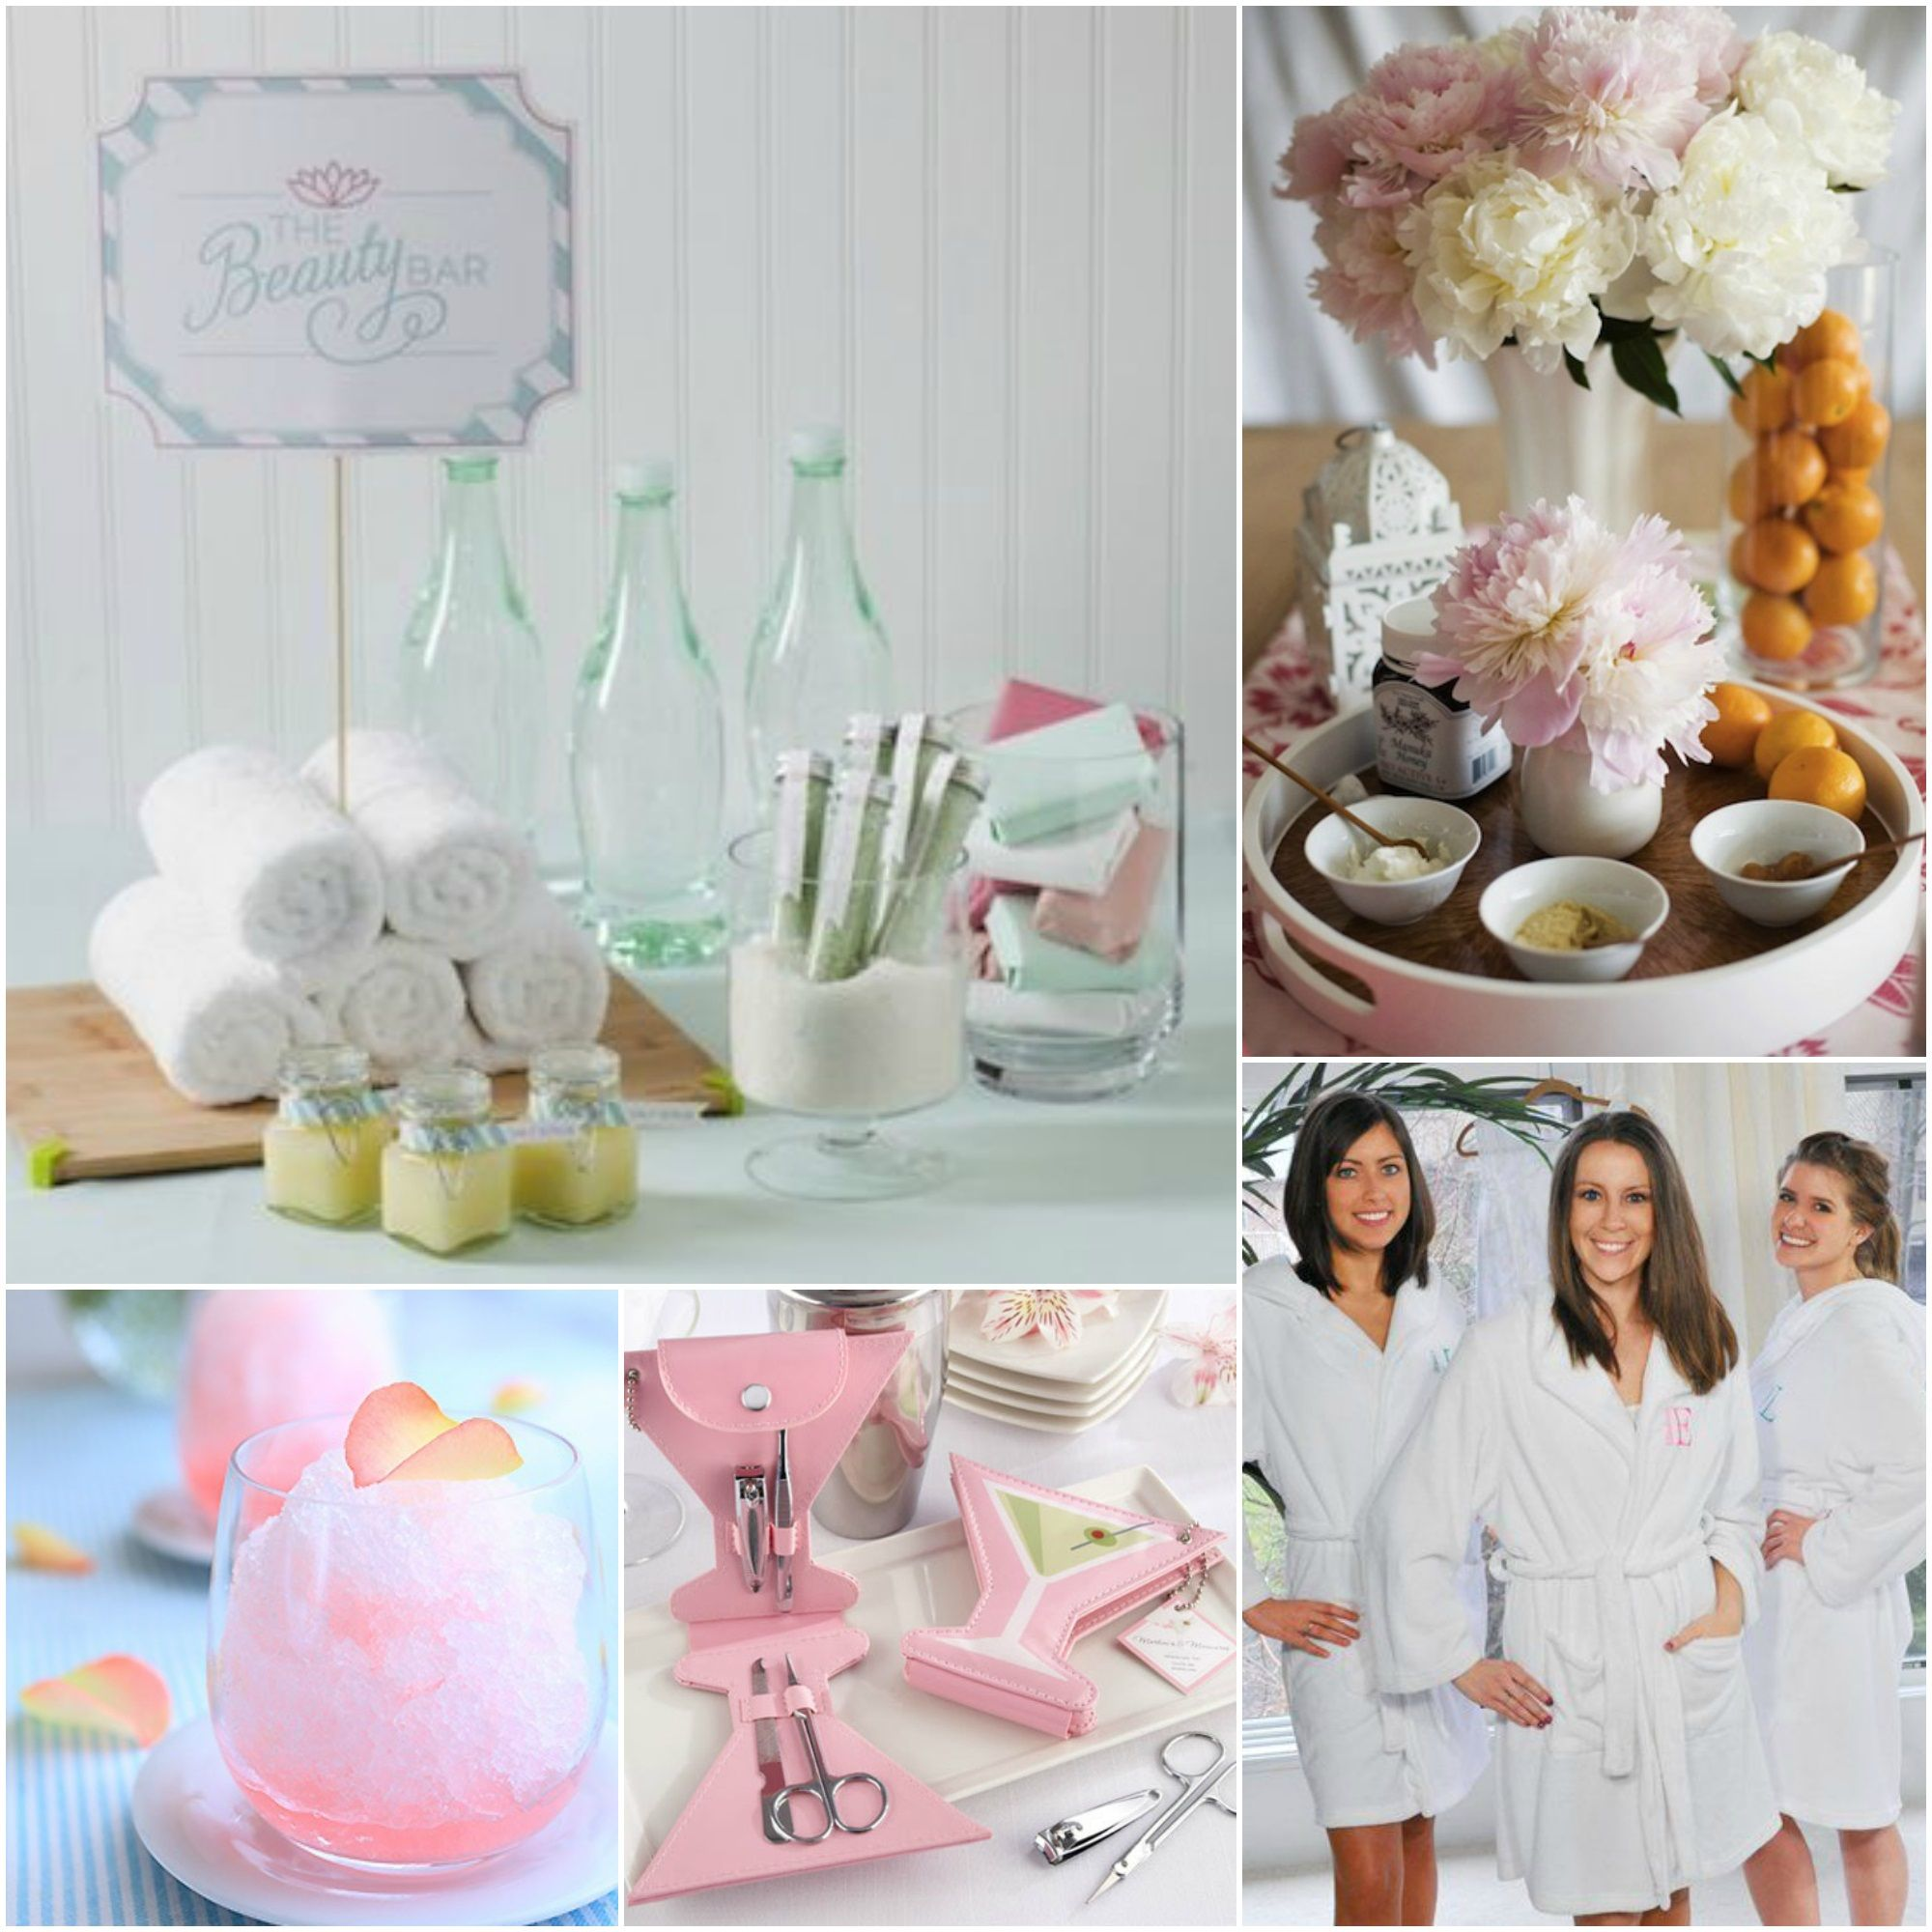 bridal shower spa create a custom scent for your wedding party for a fun and personalized spa party with your girlfriends visit